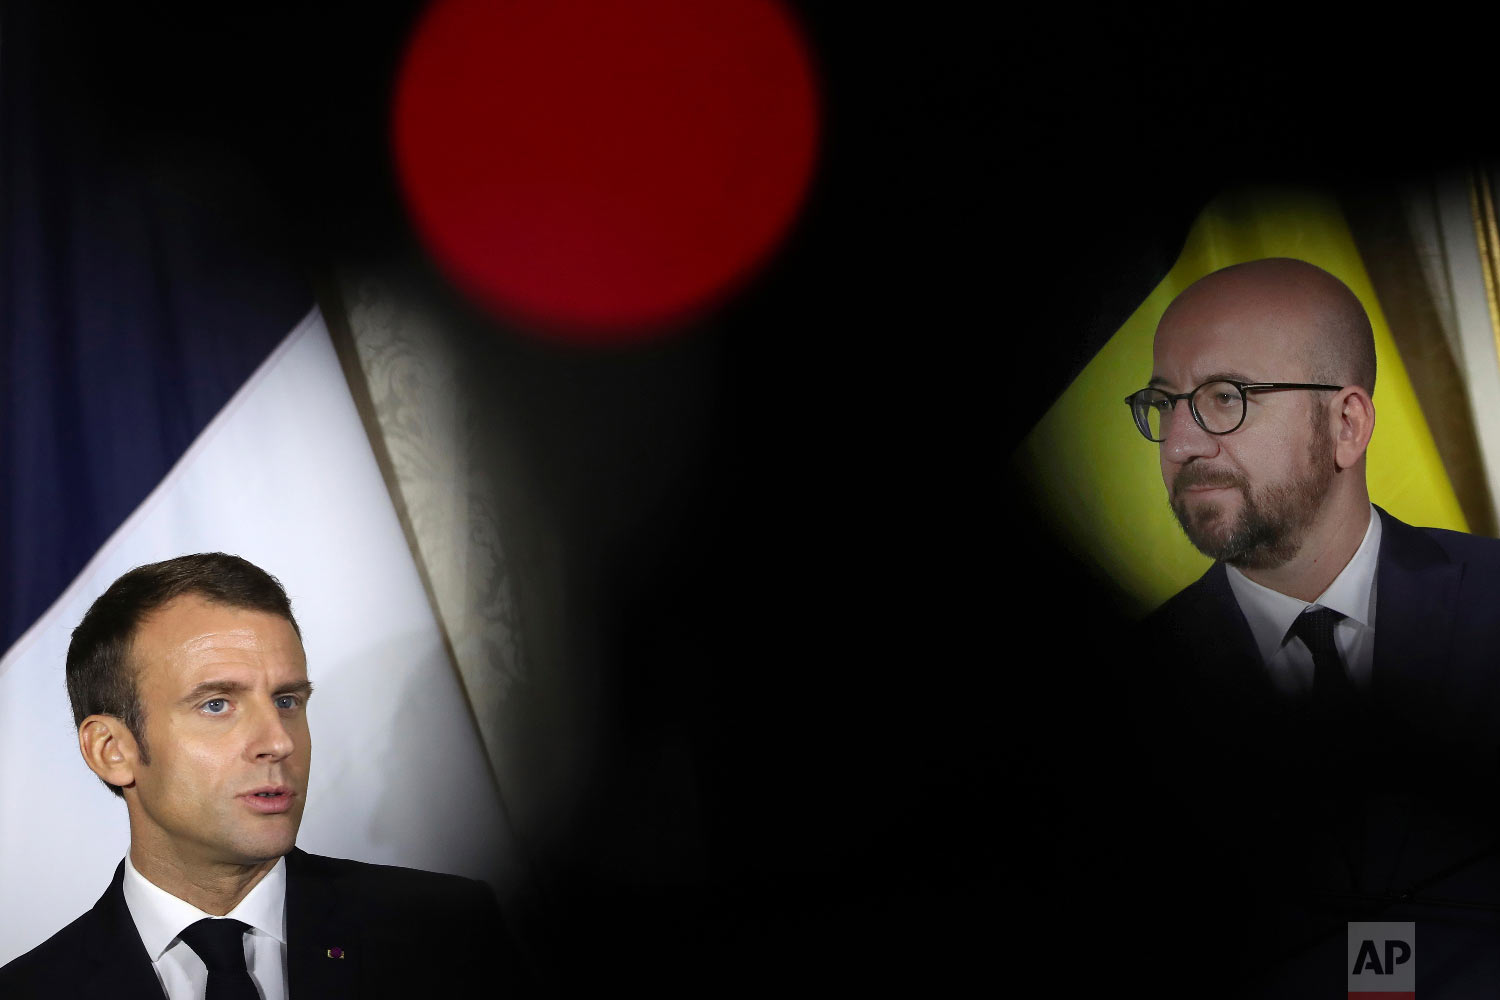 French President Emmanuel Macron, left, talks to journalists during a joint news conference with Belgian Prime Minister Charles Michel, right, following their meeting at the Egmont Palace in Brussels, Monday, Nov. 19, 2018.  (AP Photo/Francisco Seco)